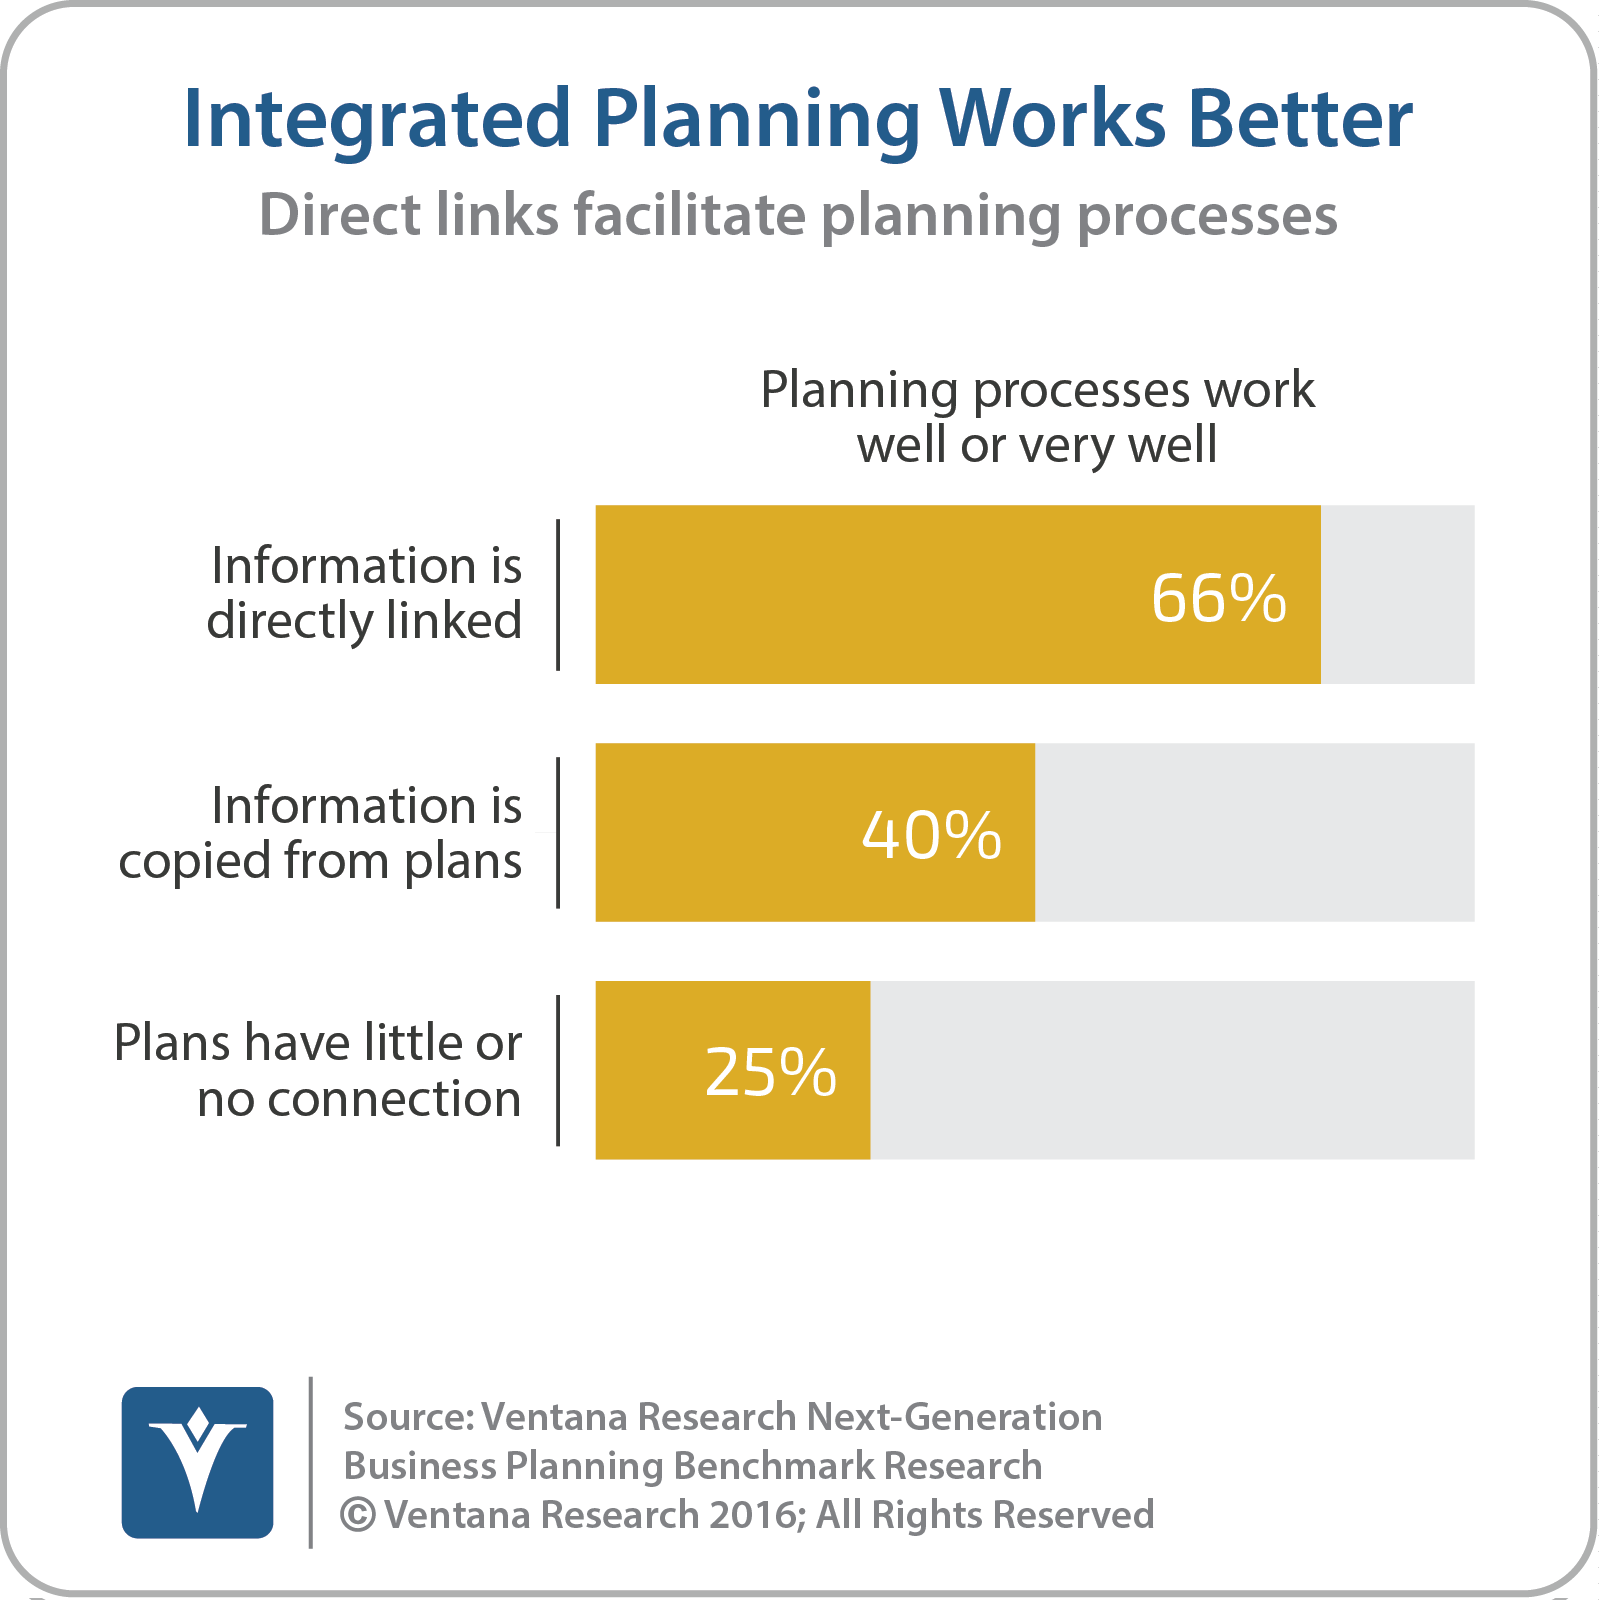 vr_NGBP_02_integrated_planning_works_better_update(1).png